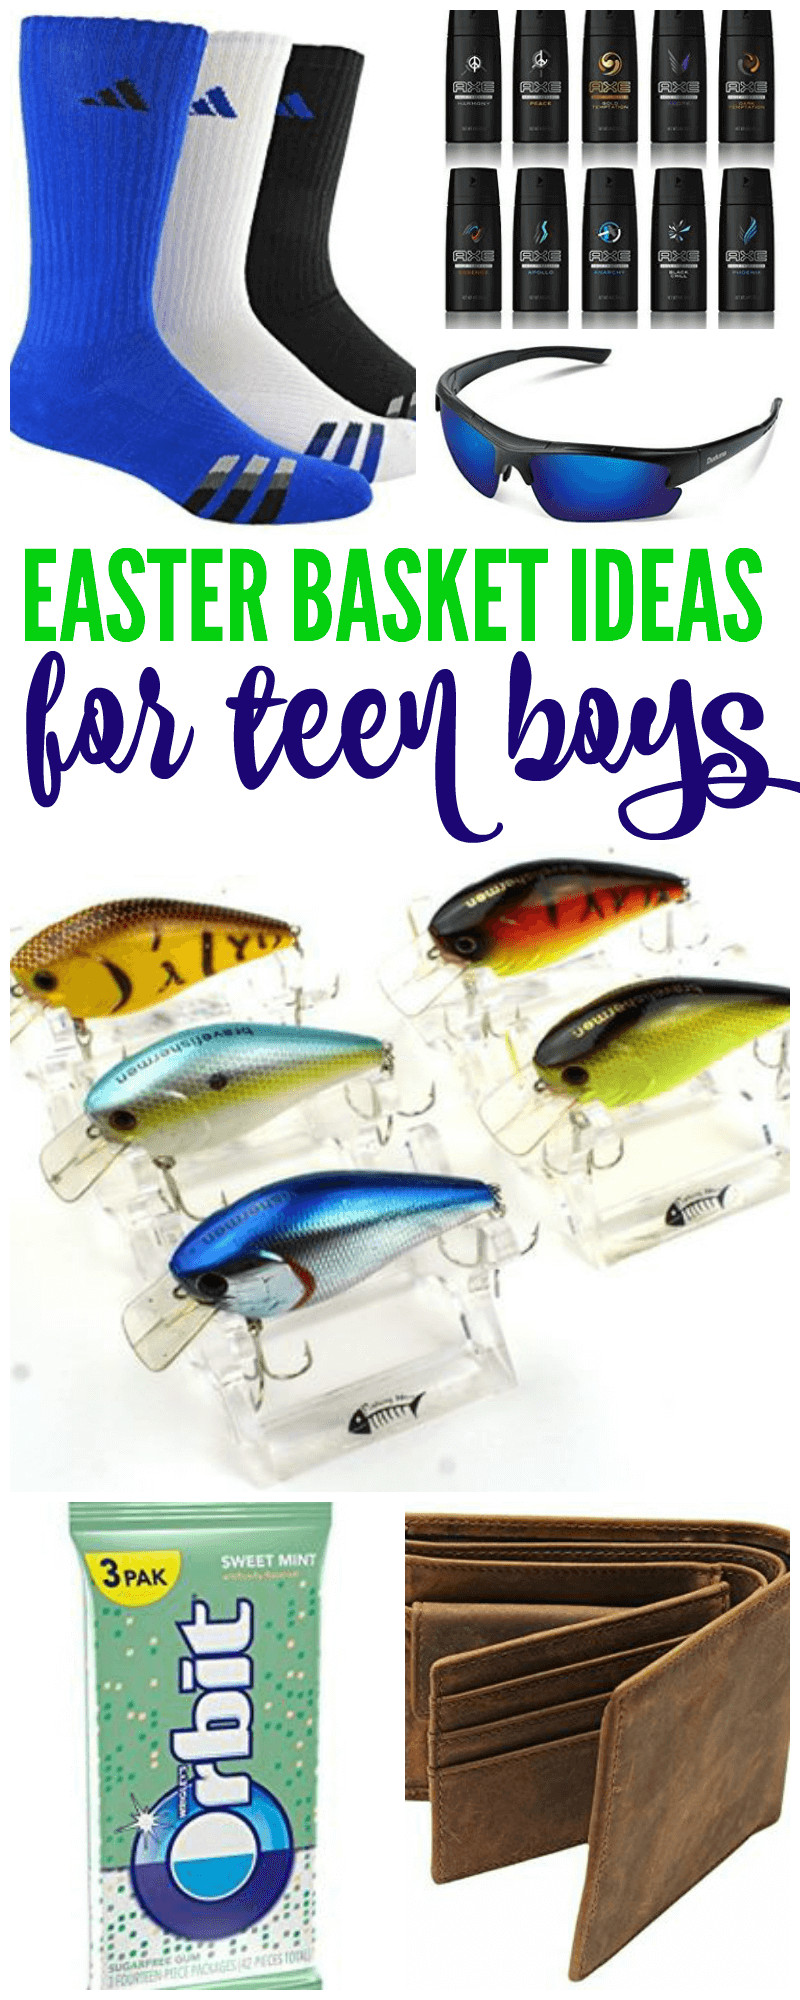 Best ideas about Easter Gift Ideas For Teen Boys . Save or Pin Easter Basket Ideas for Teen Boys Now.